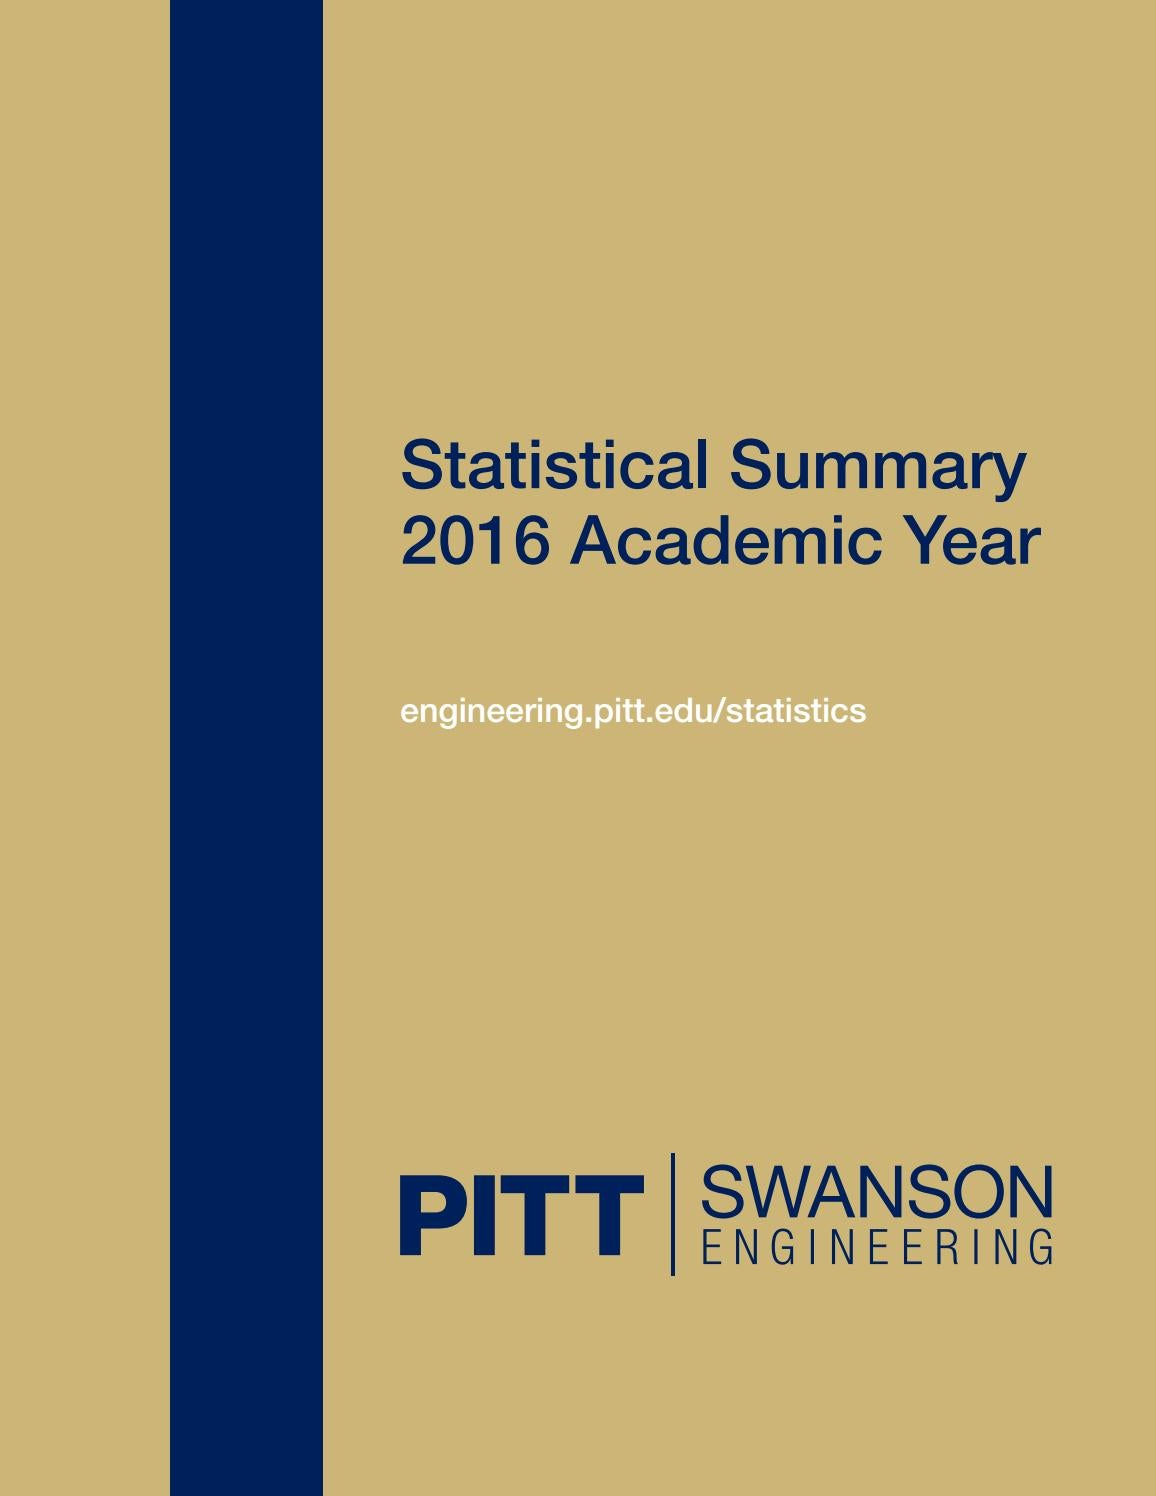 Swanson School Of Engineering 2016 Statistical Summary By Pitt 591 X 238 22 Kb Jpeg 4 Channel Amp Wiring Diagram Issuu